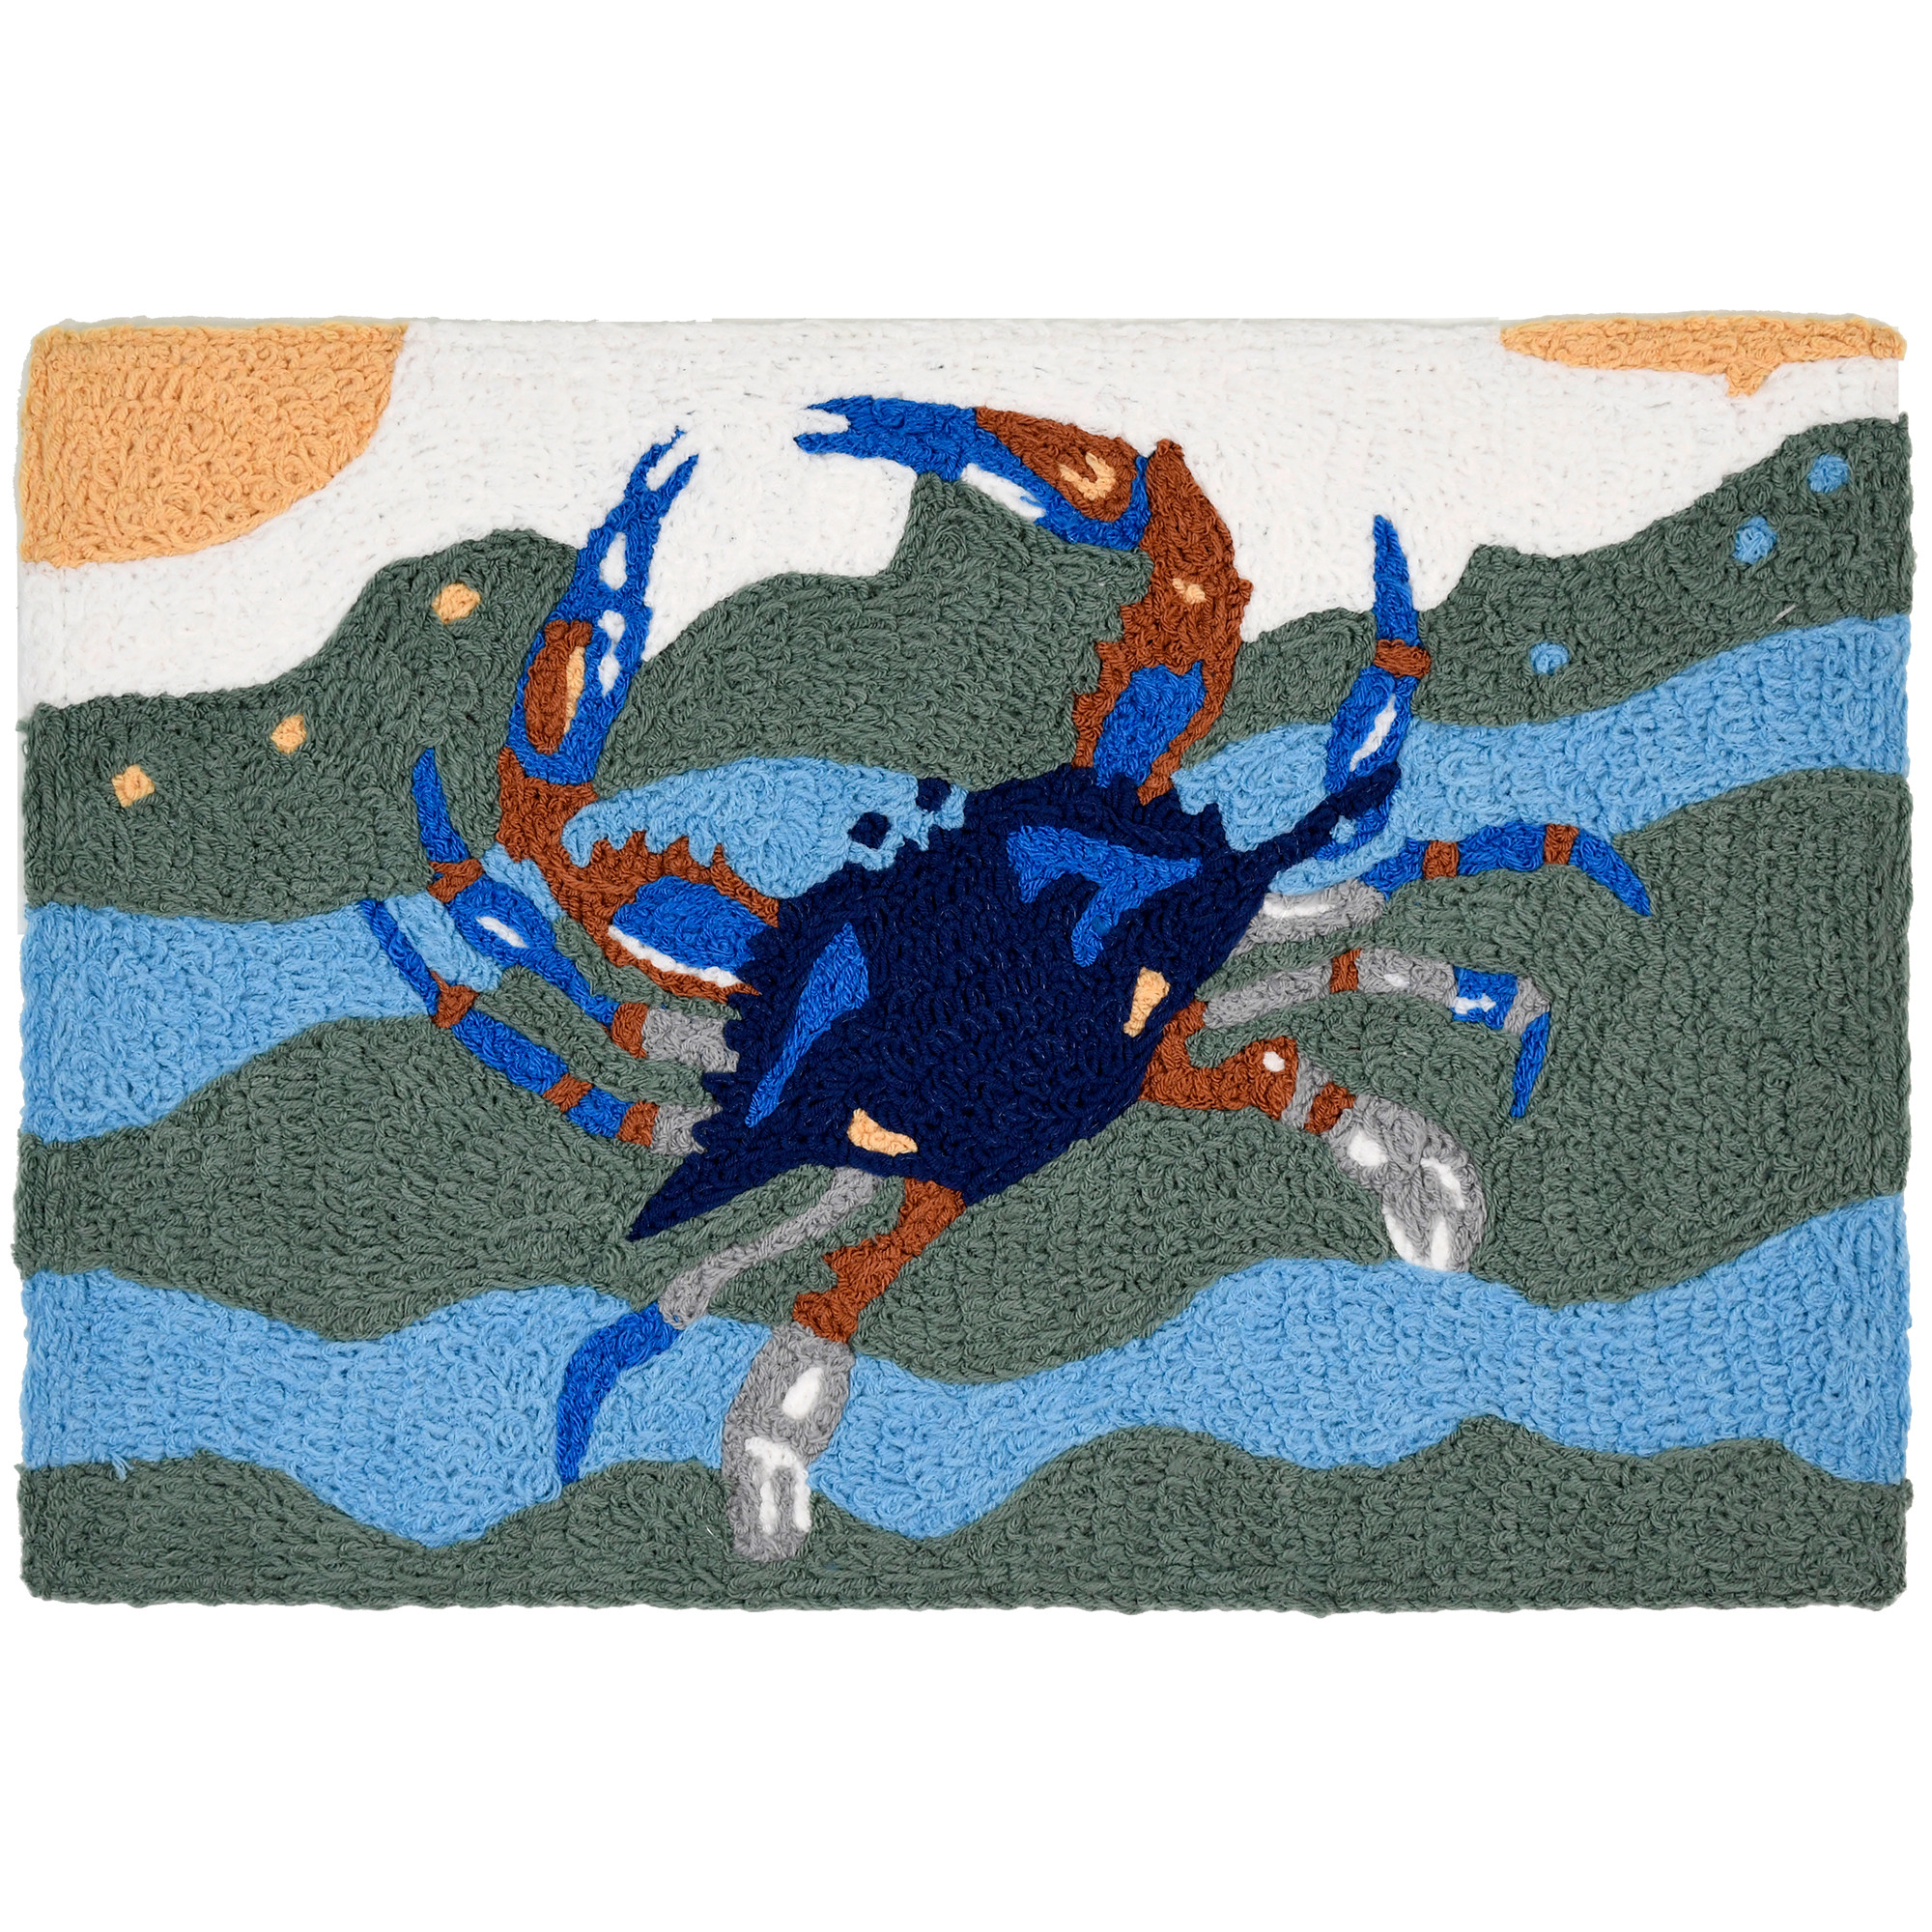 This Jellybean® accent rug features blues and greens accented by hints of orange. The royal blue crab stands out against aqua waters making the waves seem steps away. This polyester throw rug can be used indoor and outdoor, with machine washable crafting.